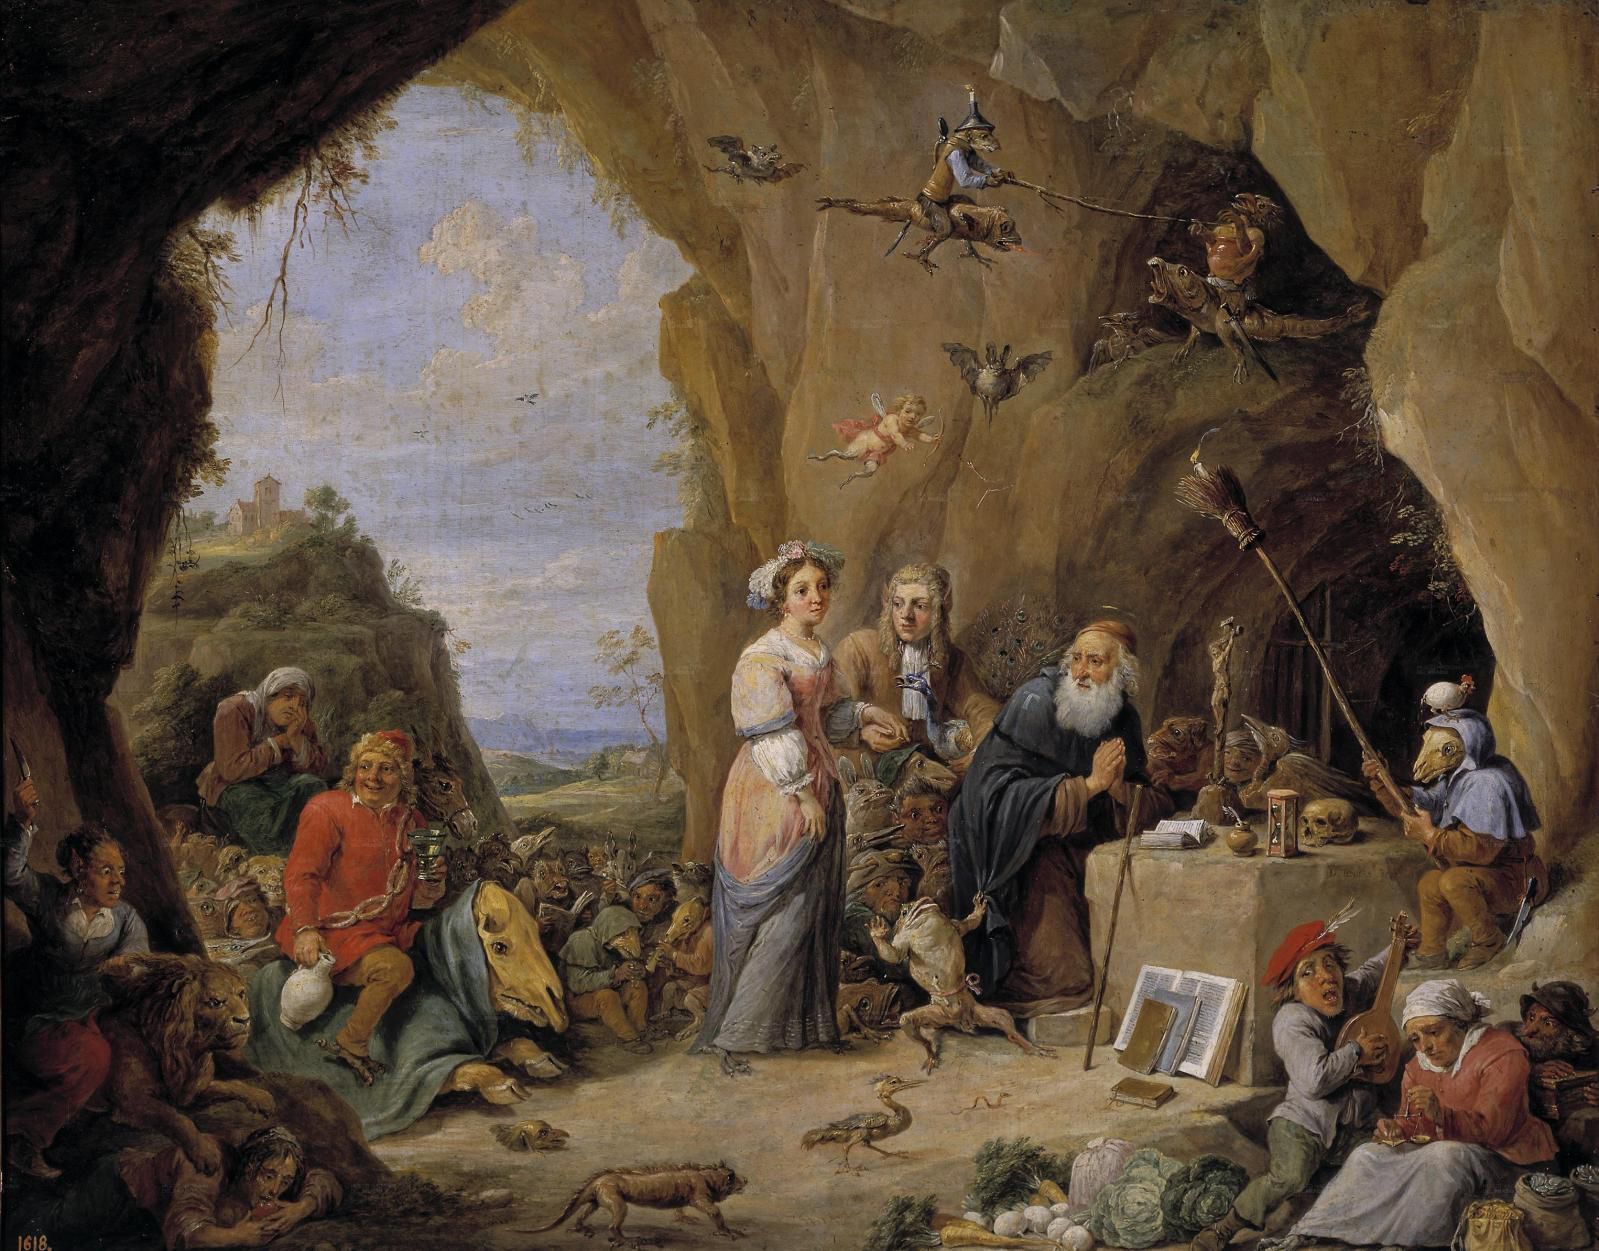 The Temptation of St. Anthony by David Teniers the Younger (1647)